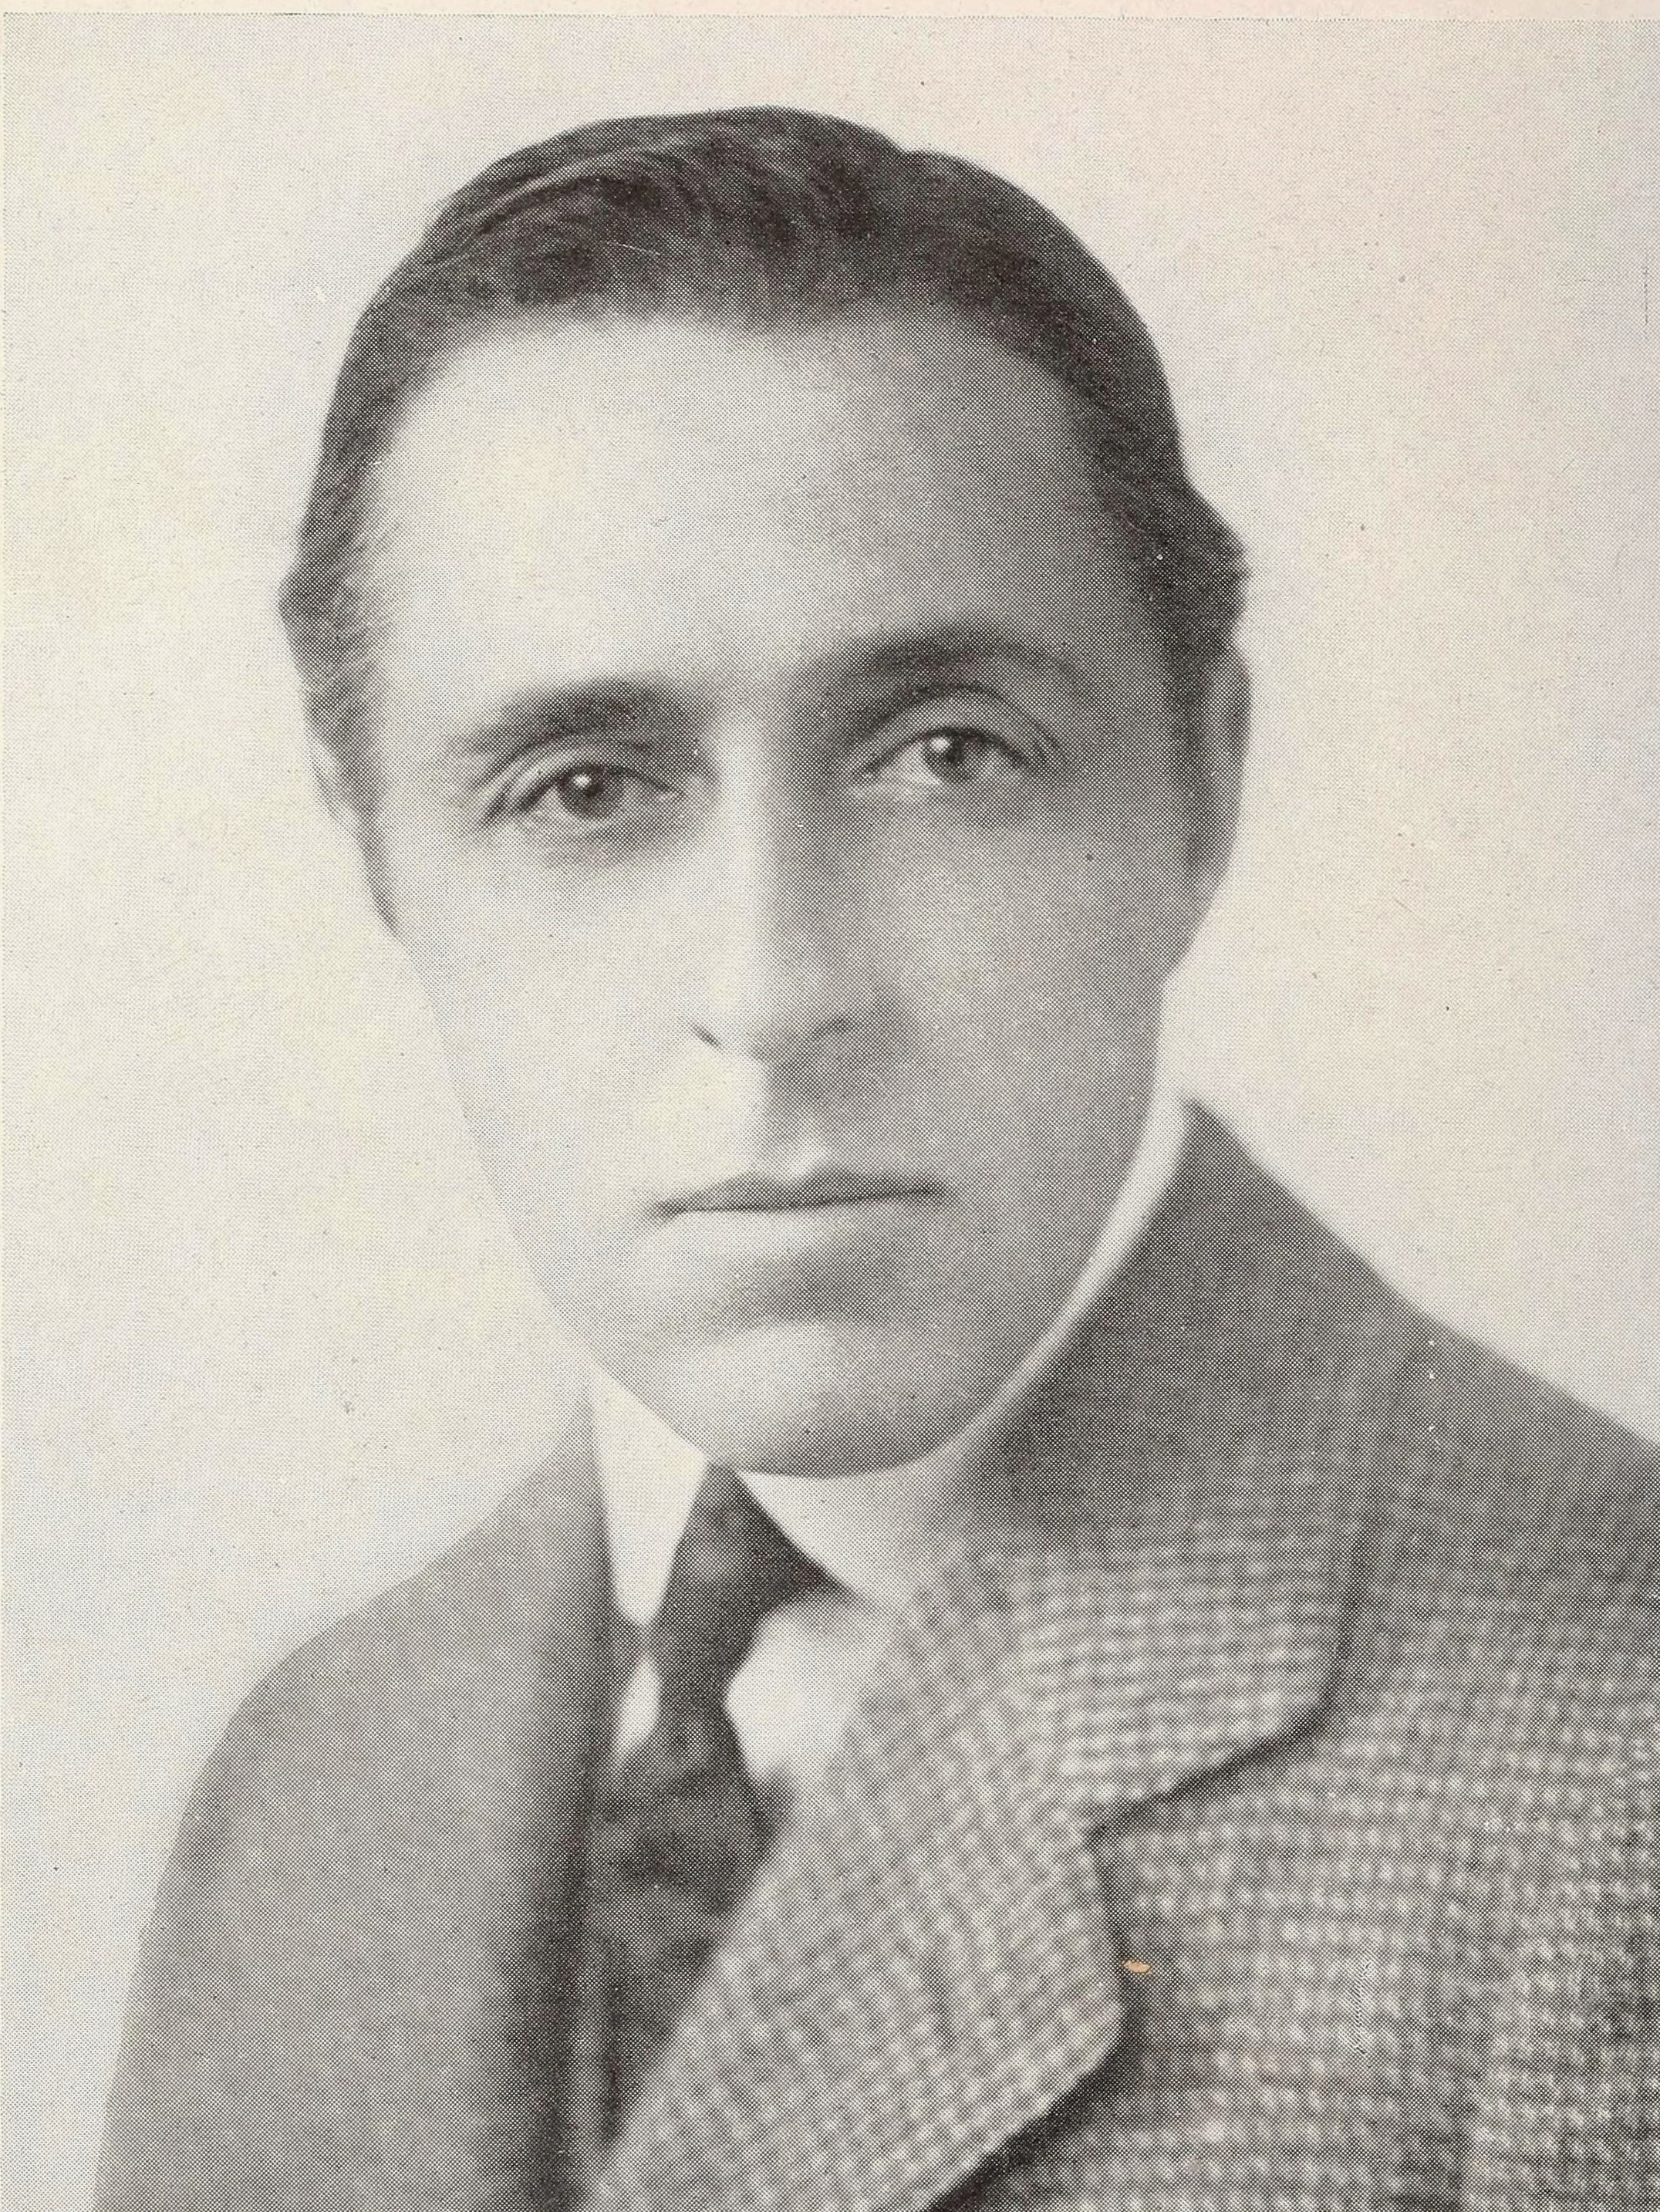 The life and career of dw griffith